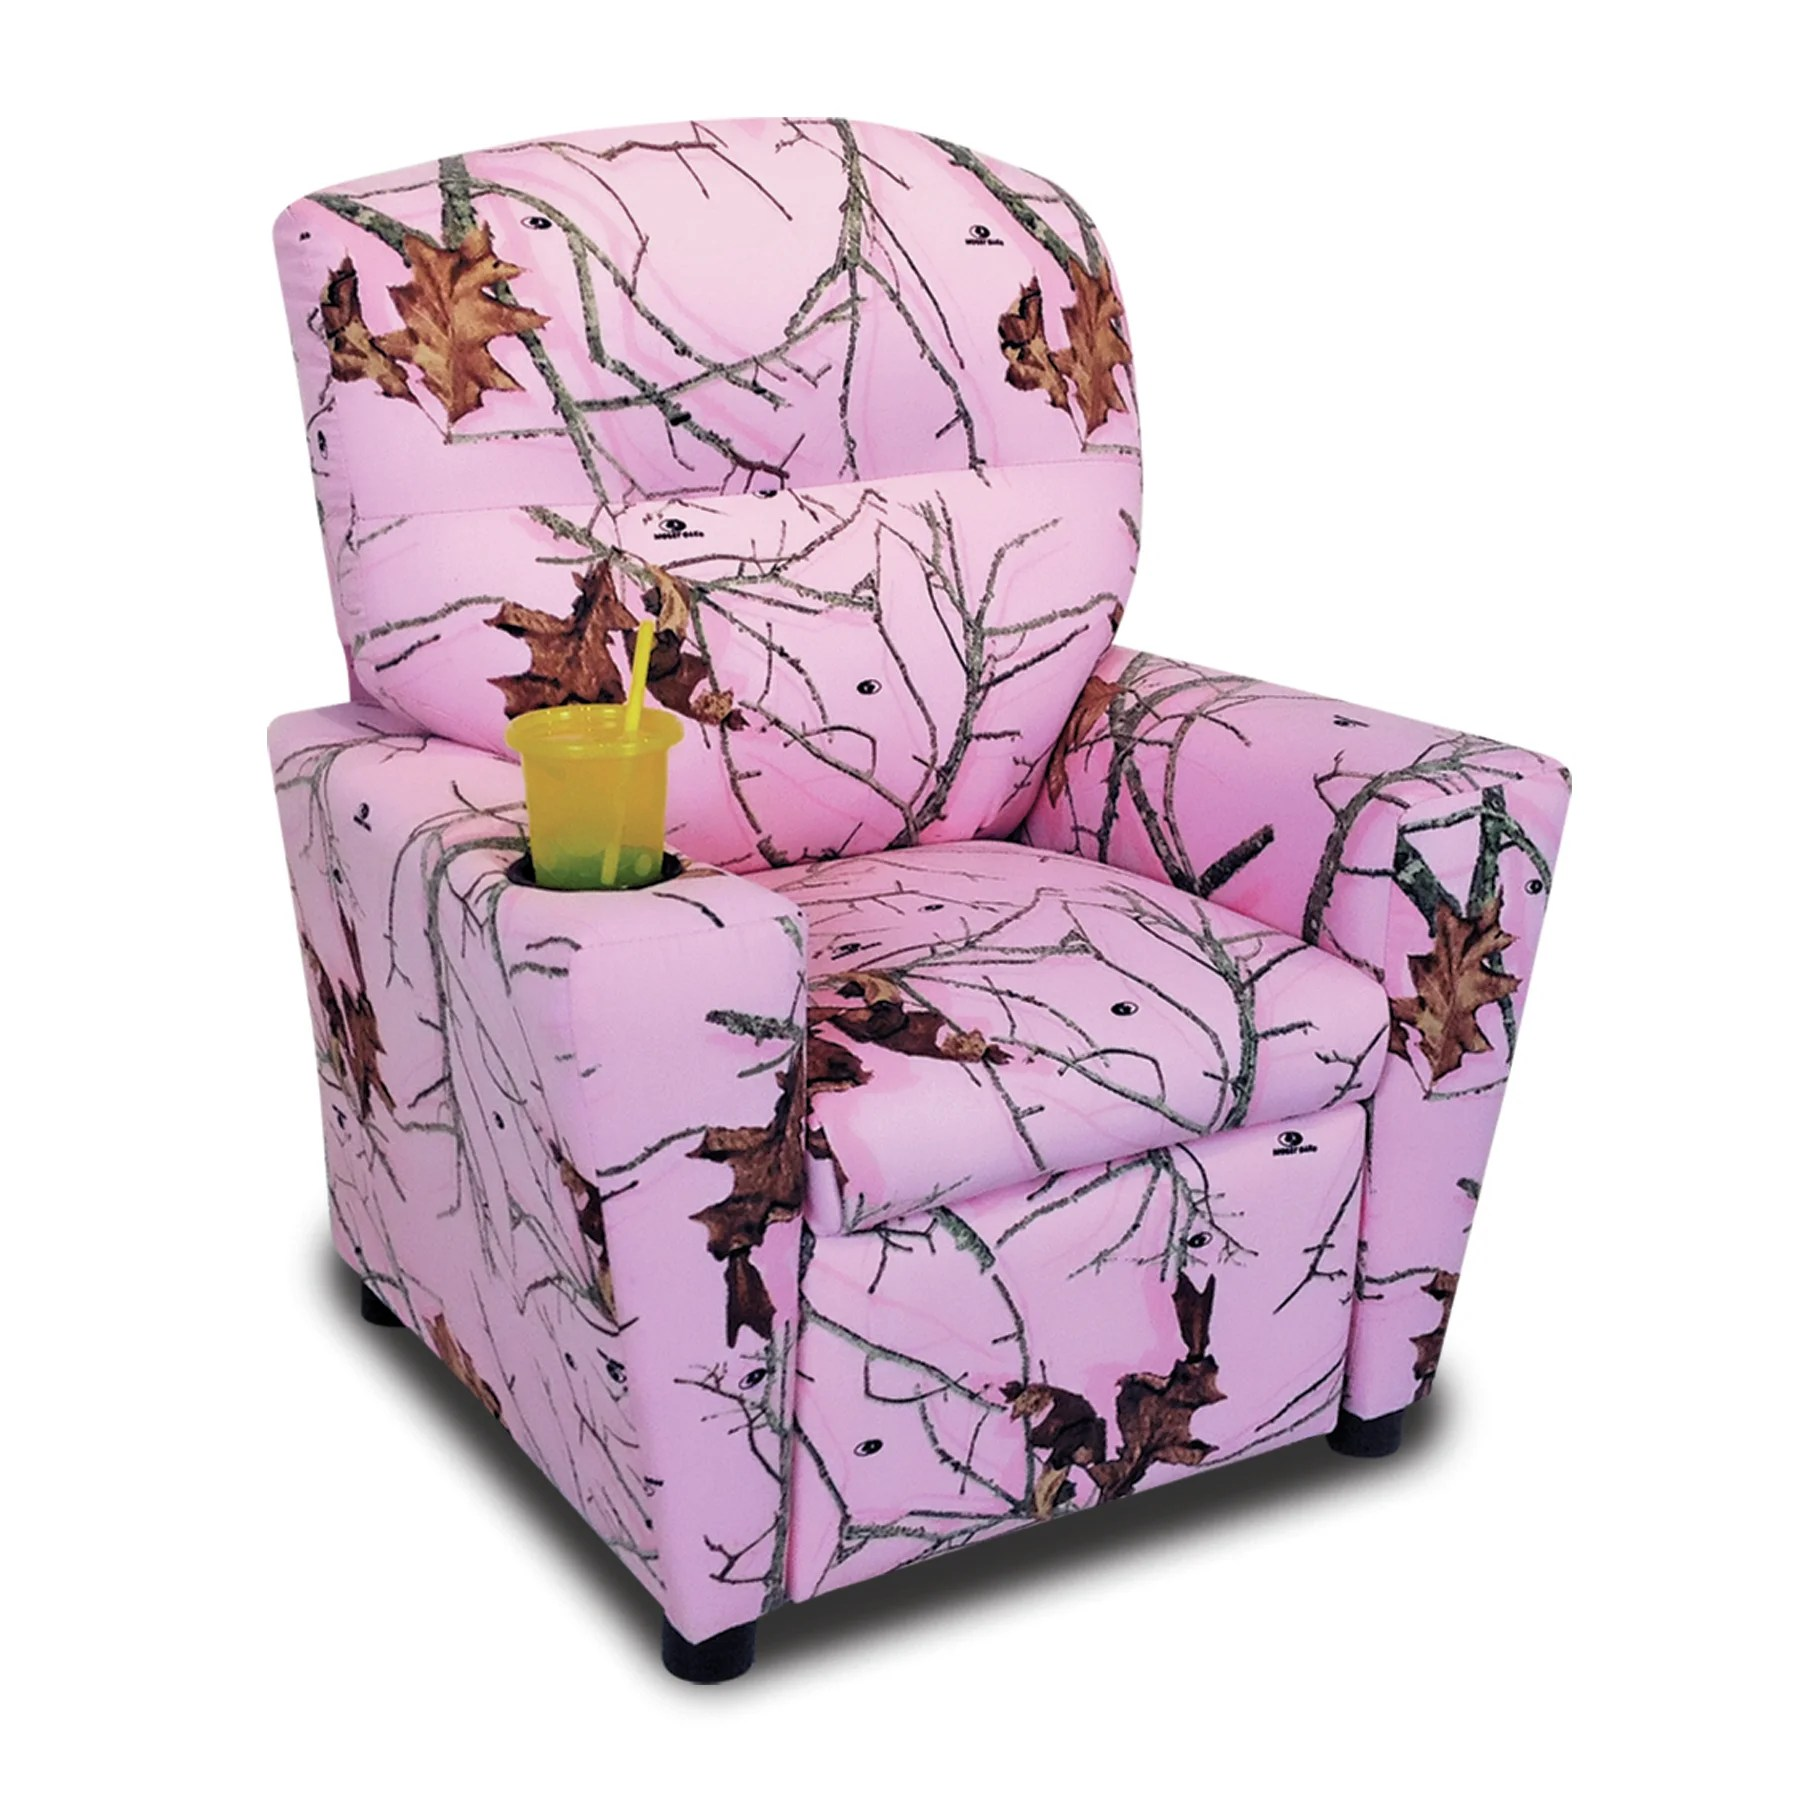 pink camo lawn chair covers jhb mossy oak nativ living kids recliner with cup holder wayfair